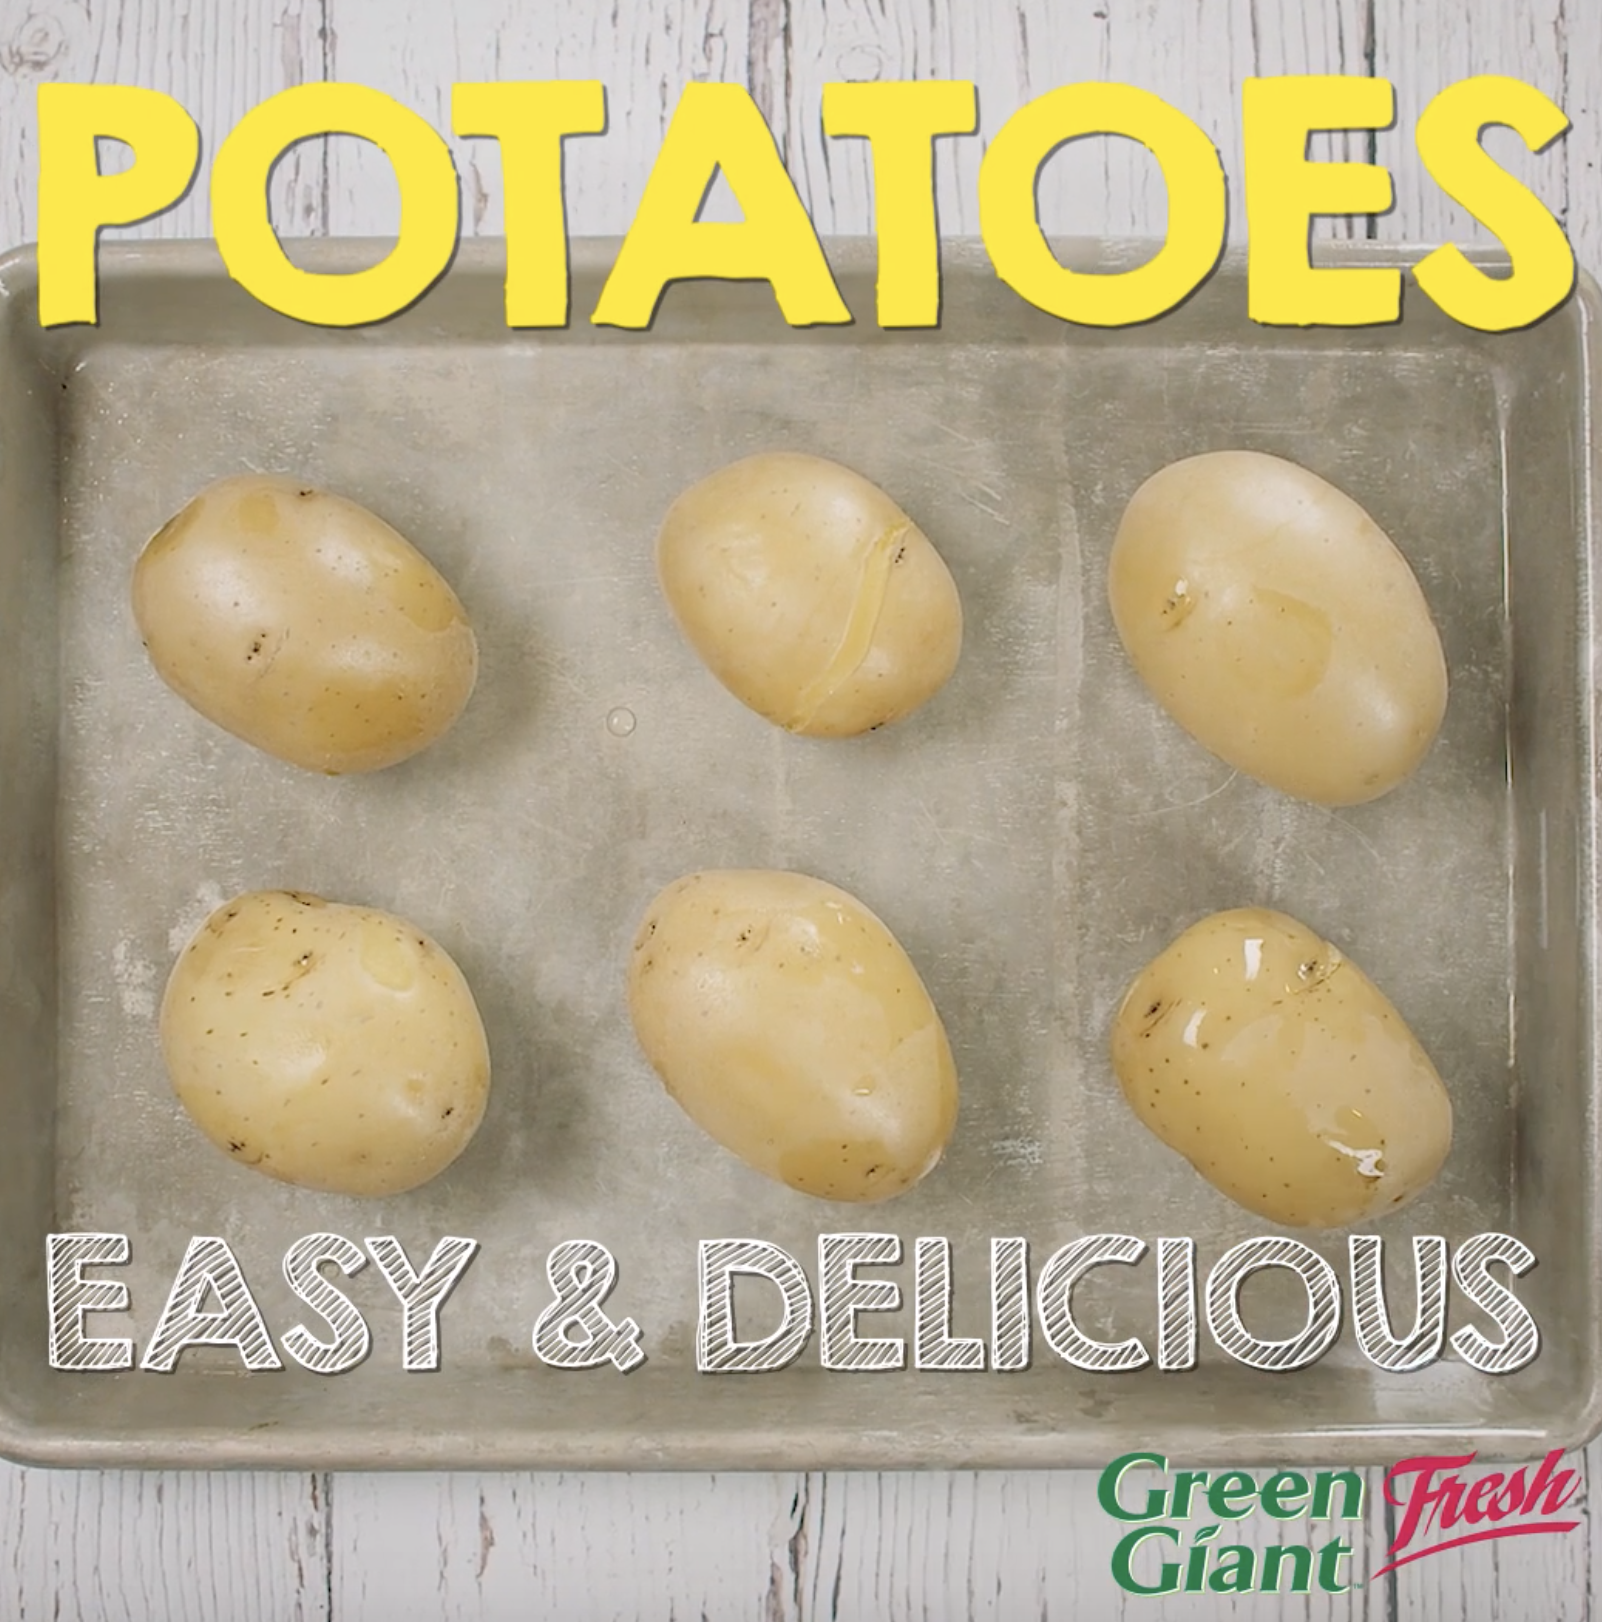 Green Giant™ Fresh Potatoes: Easy & Delicious